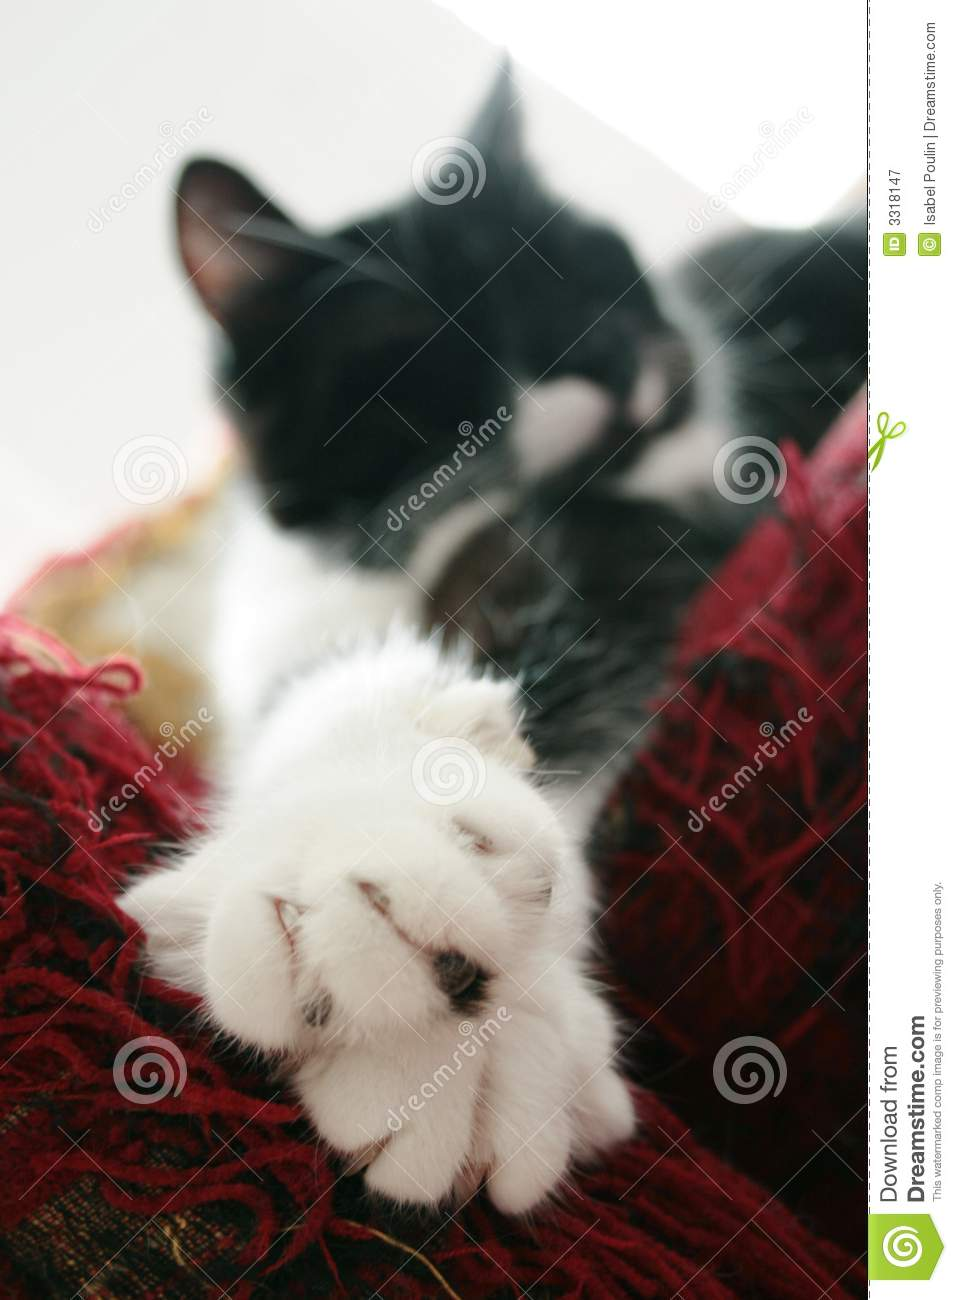 Cat outstretched on sofa